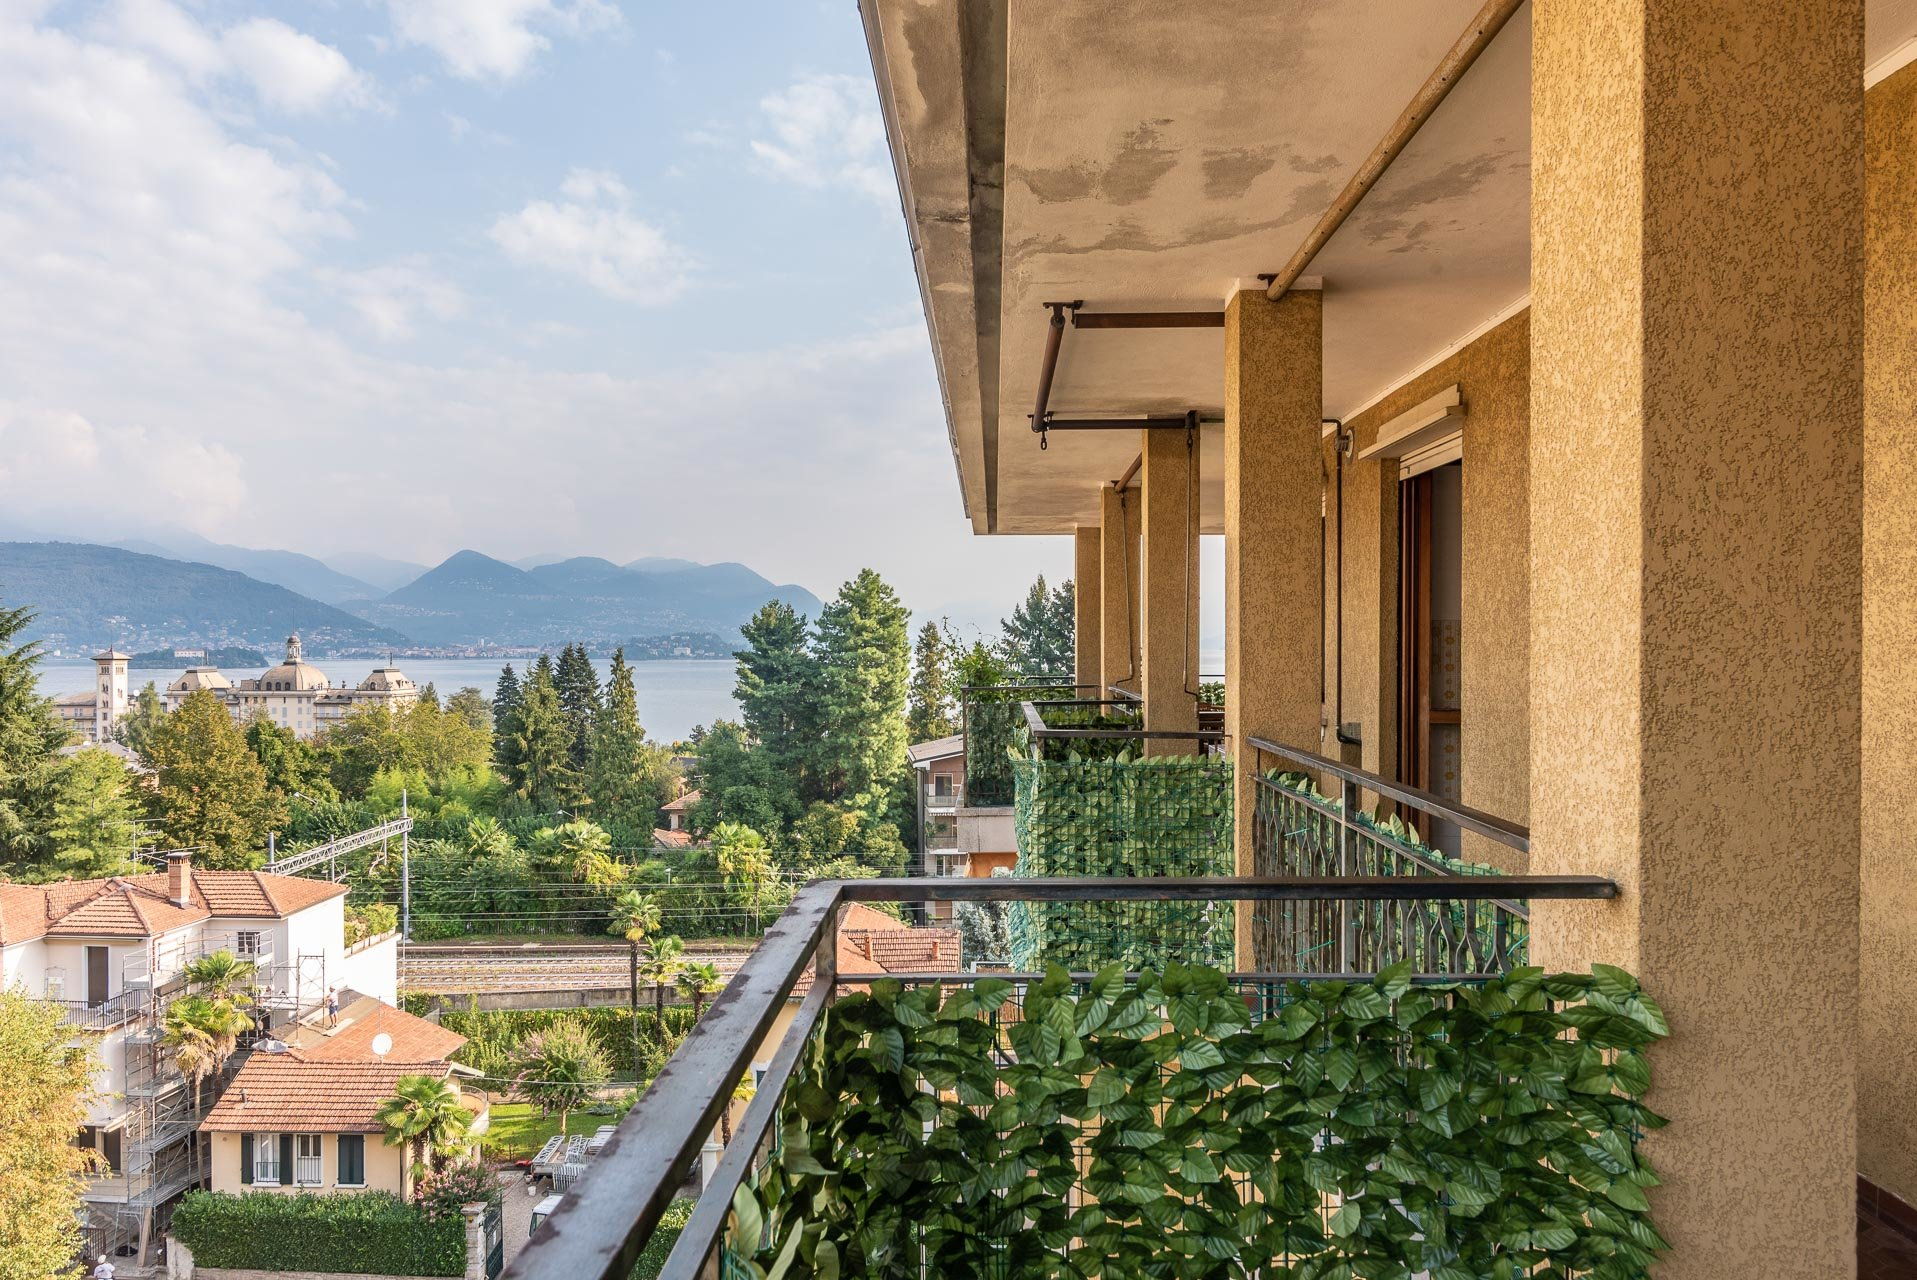 Apartment for rent in Stresa - balcony with lake view